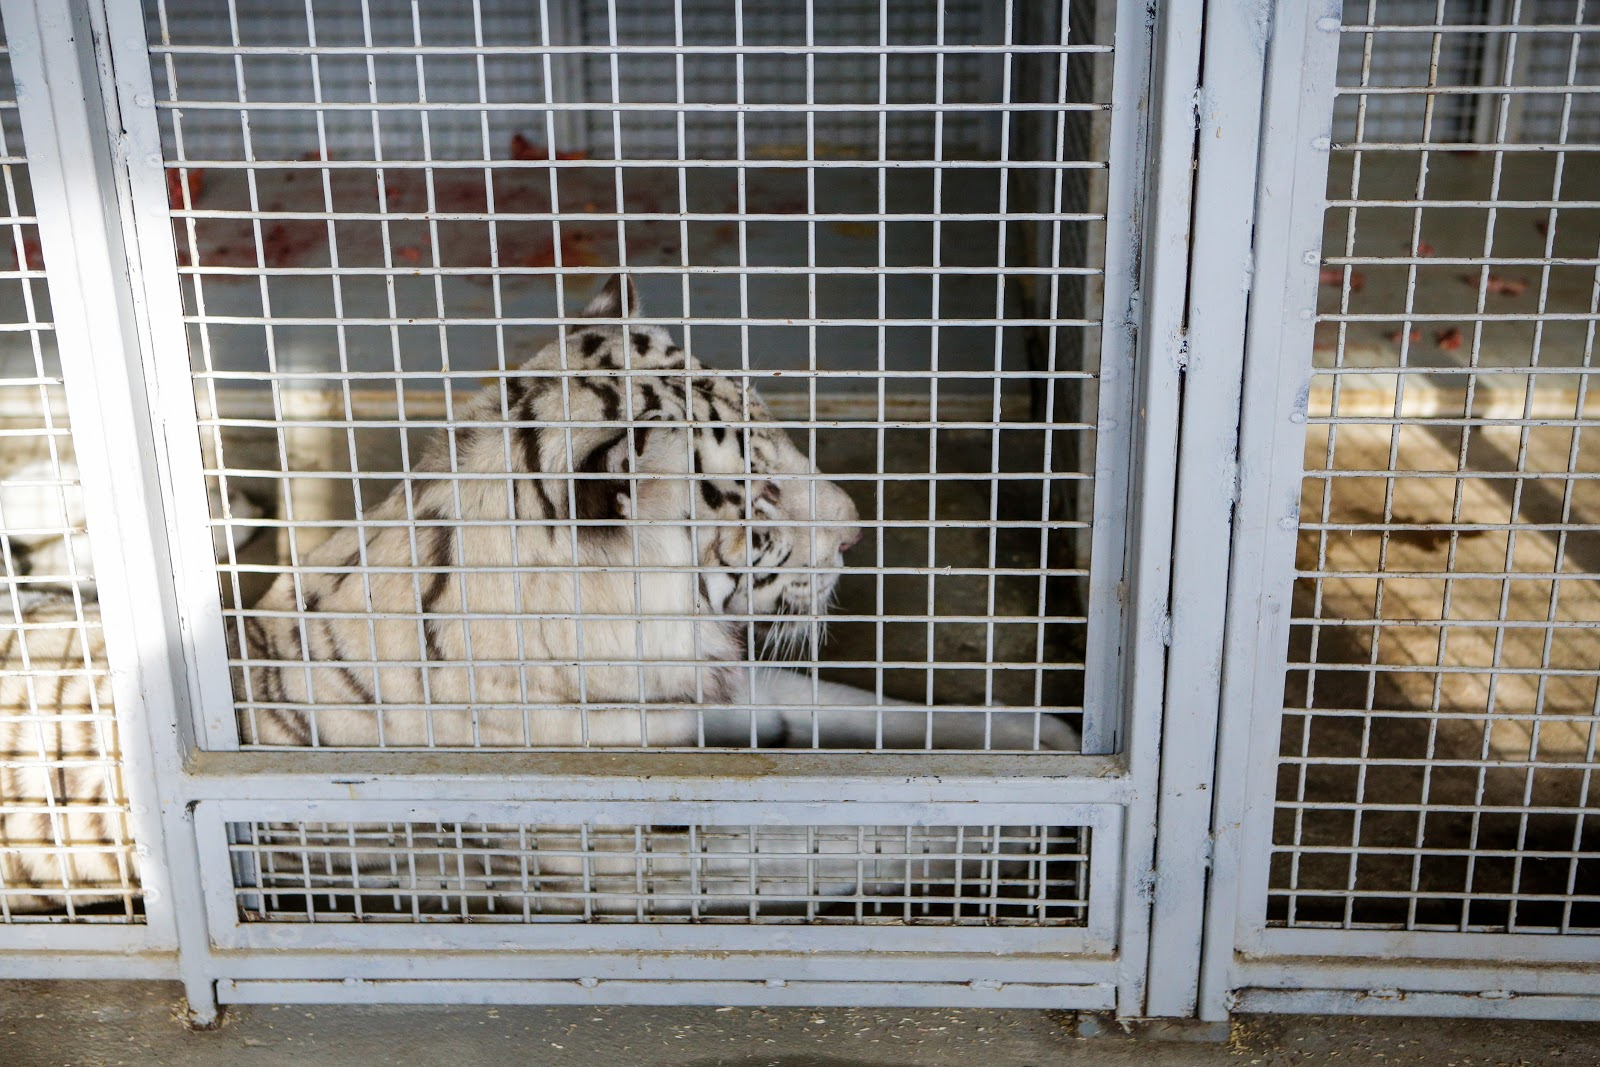 White tiger inside a cage